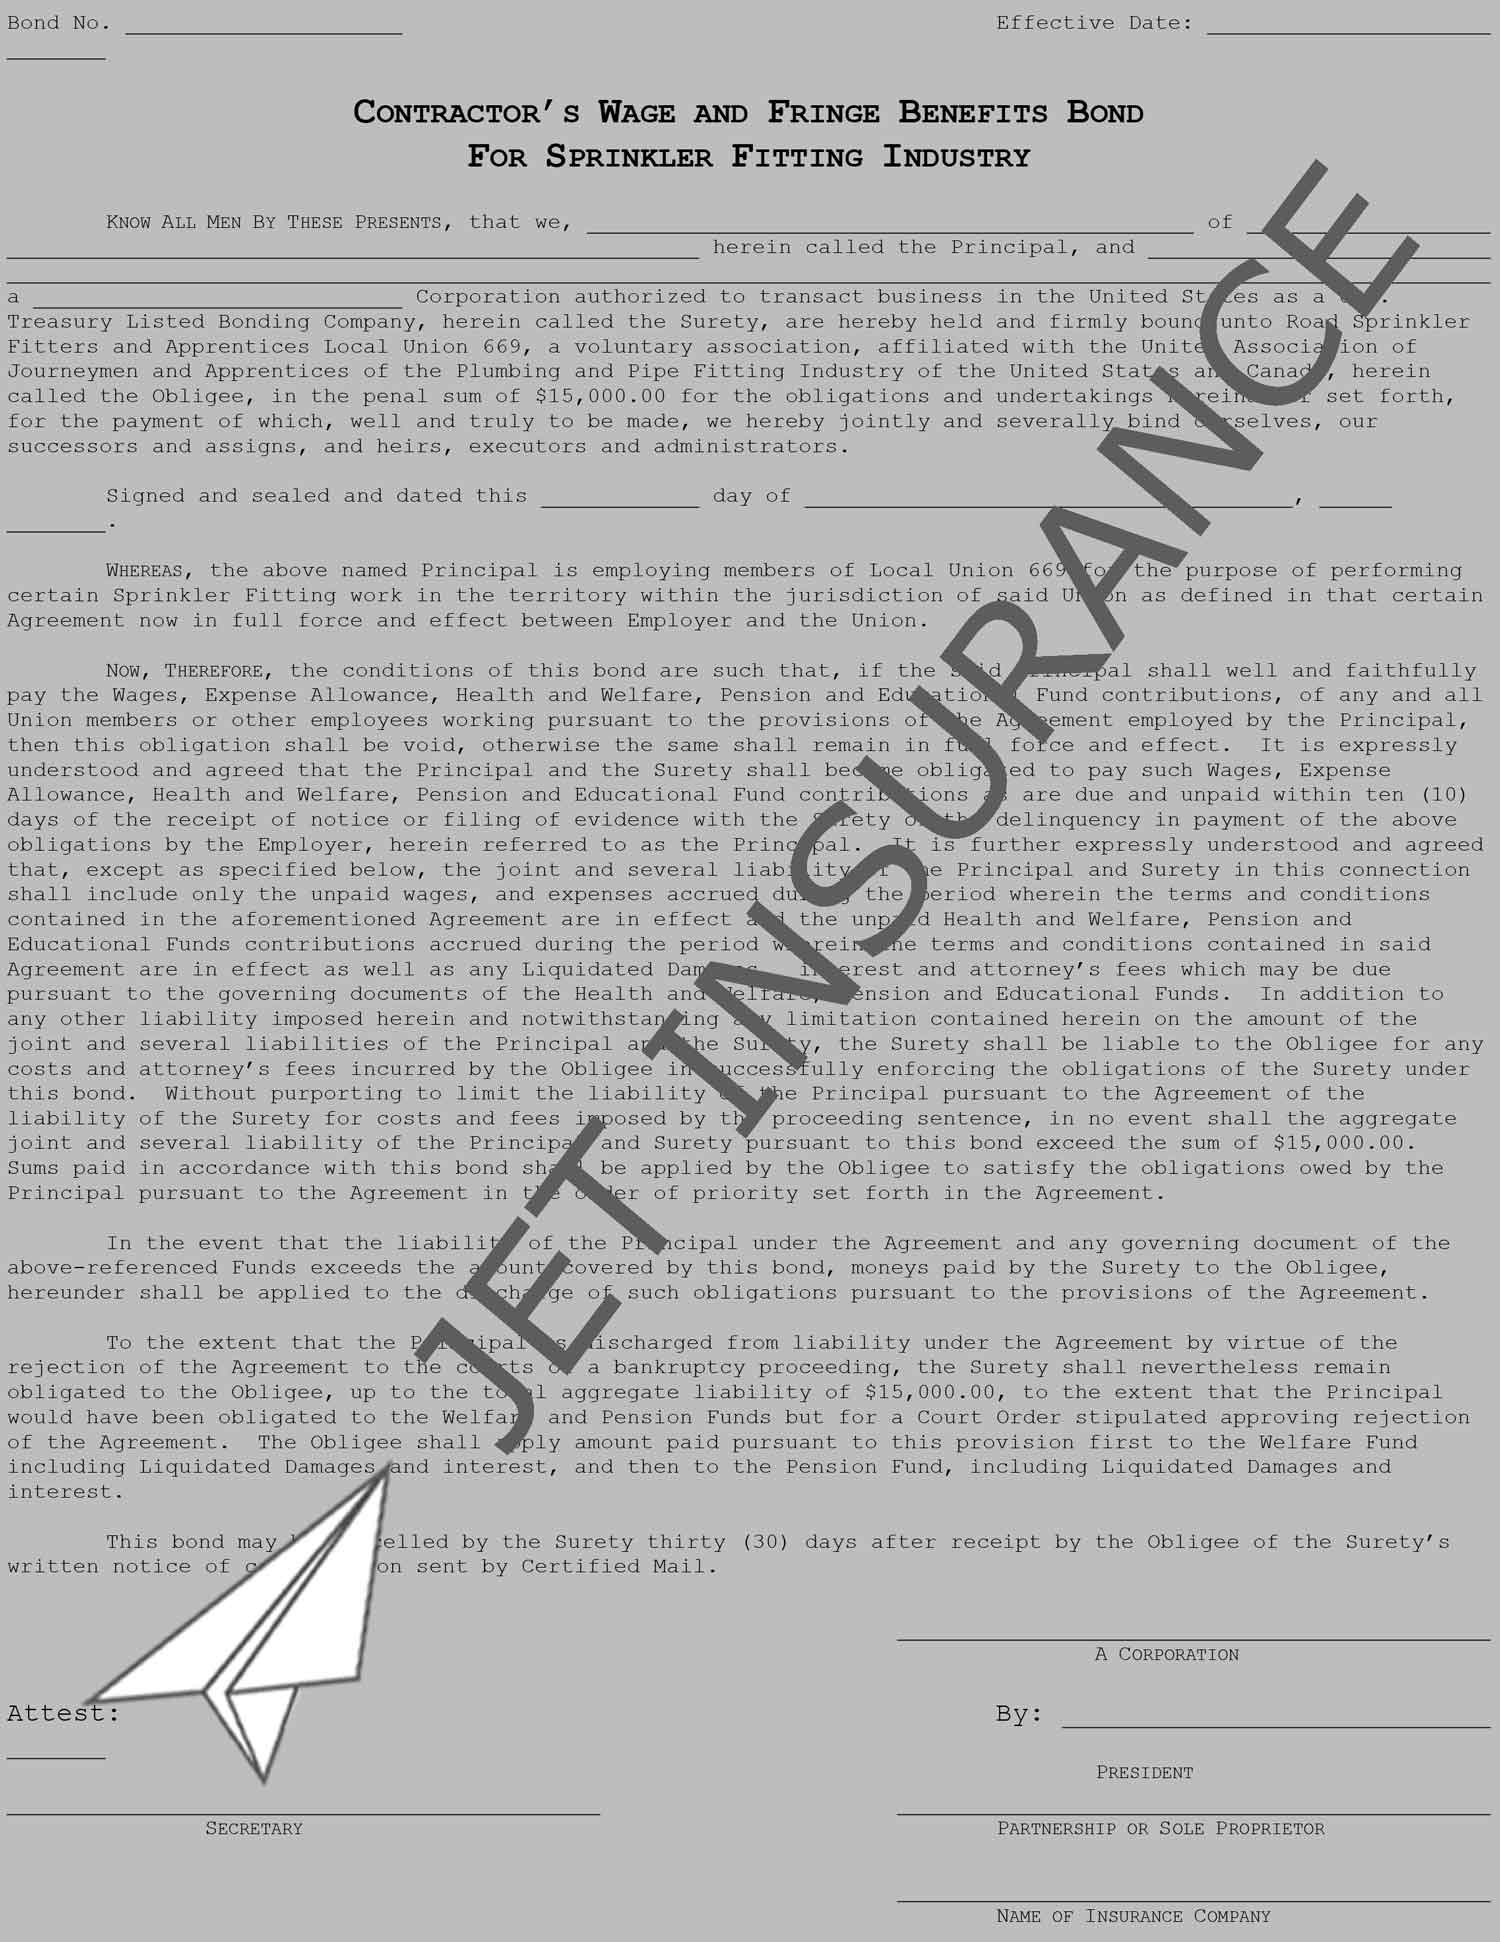 Sprinkler Fitters Local Union 669 Wage and Welfare Bond Form